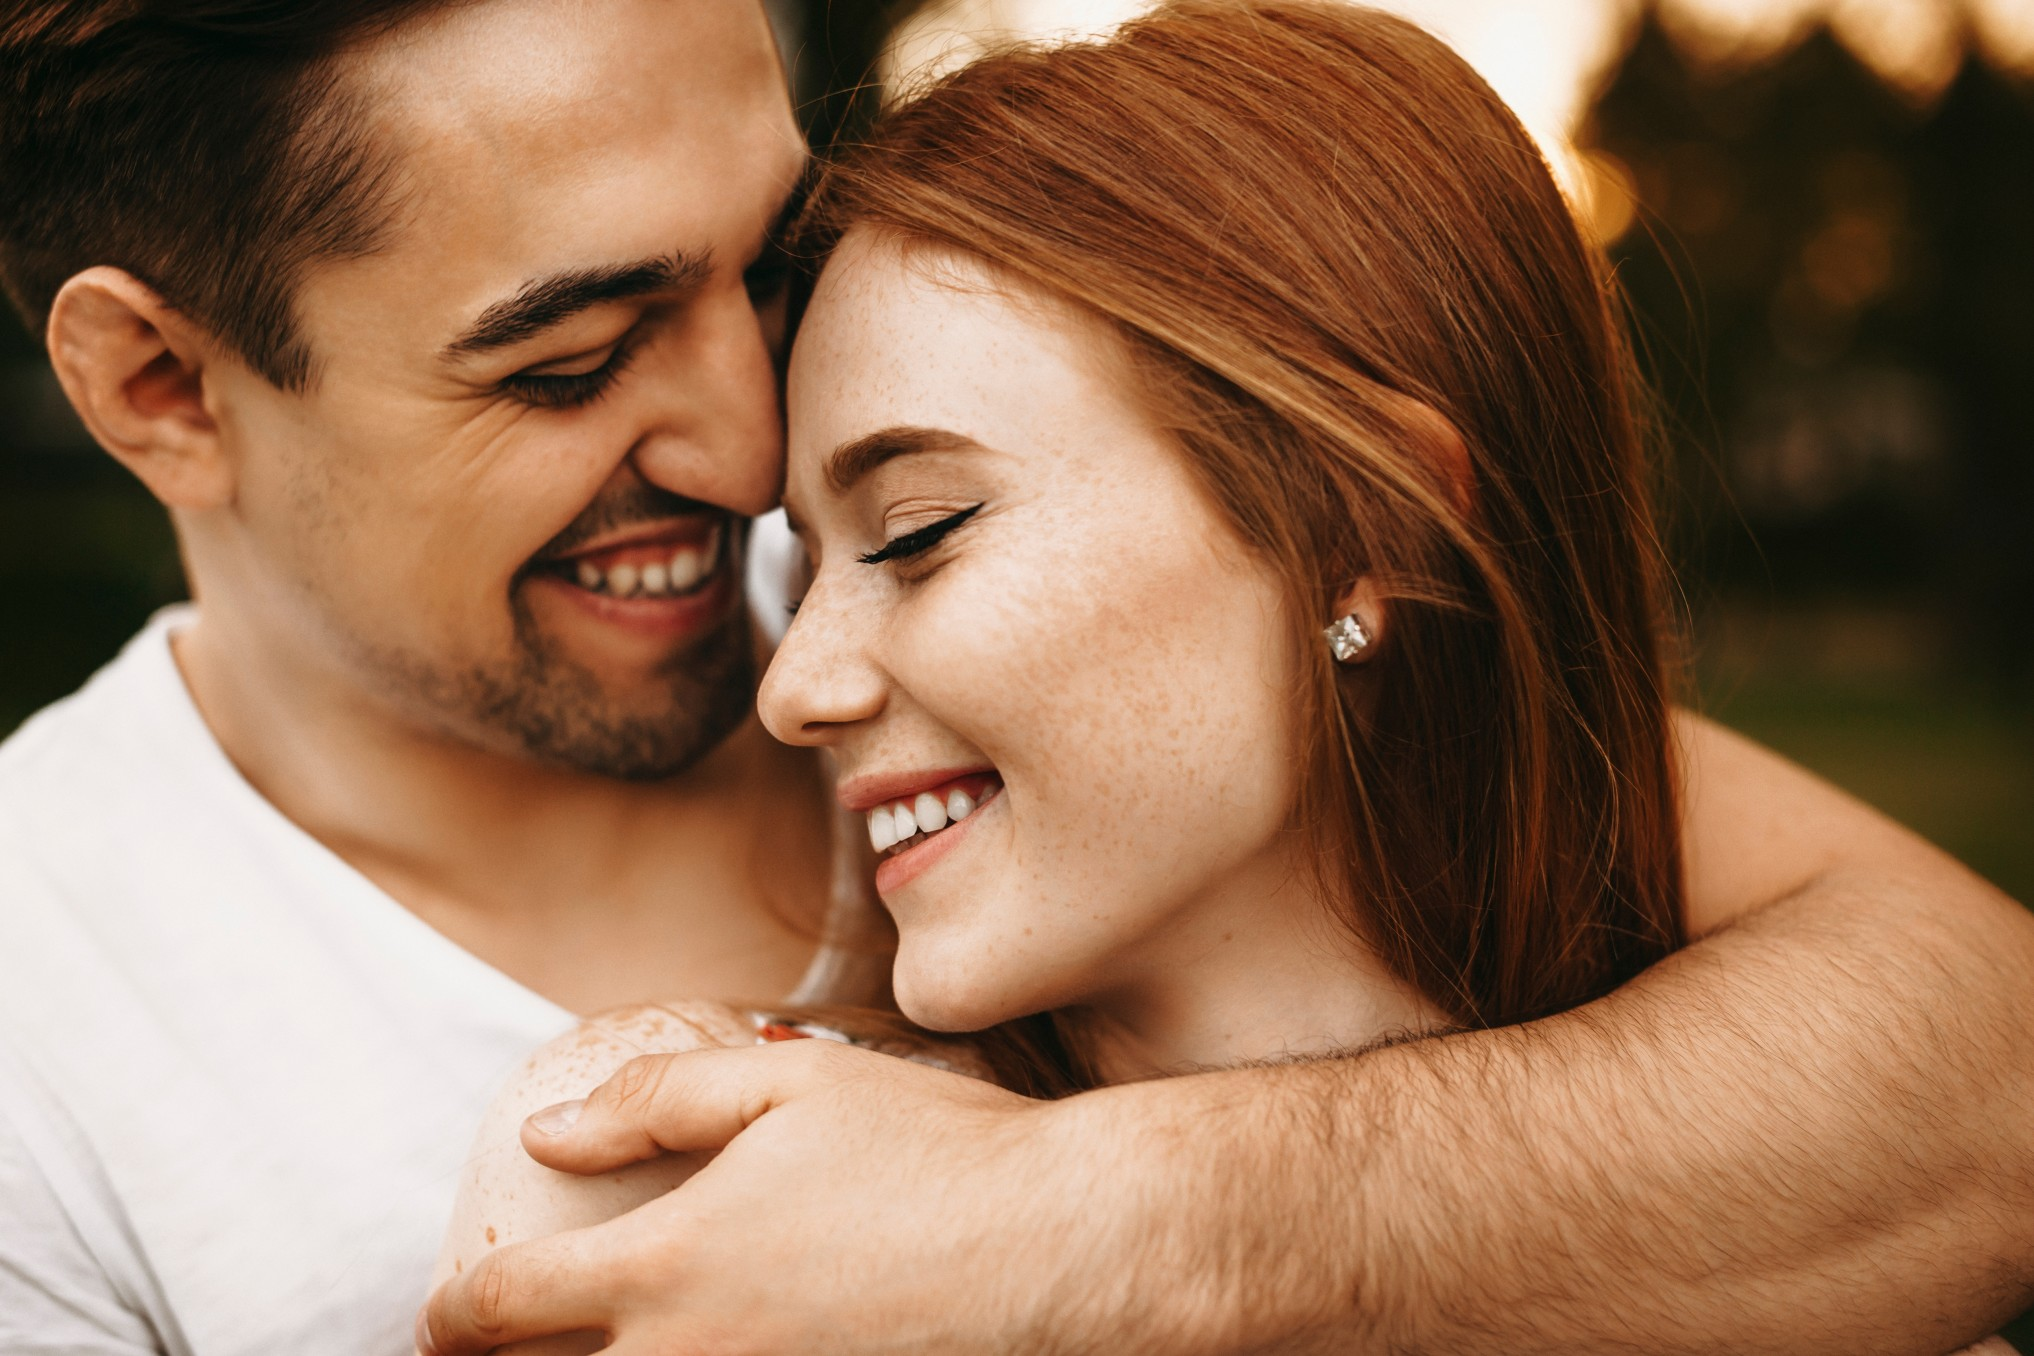 Teeth Whitening can Lead you to Find True Love